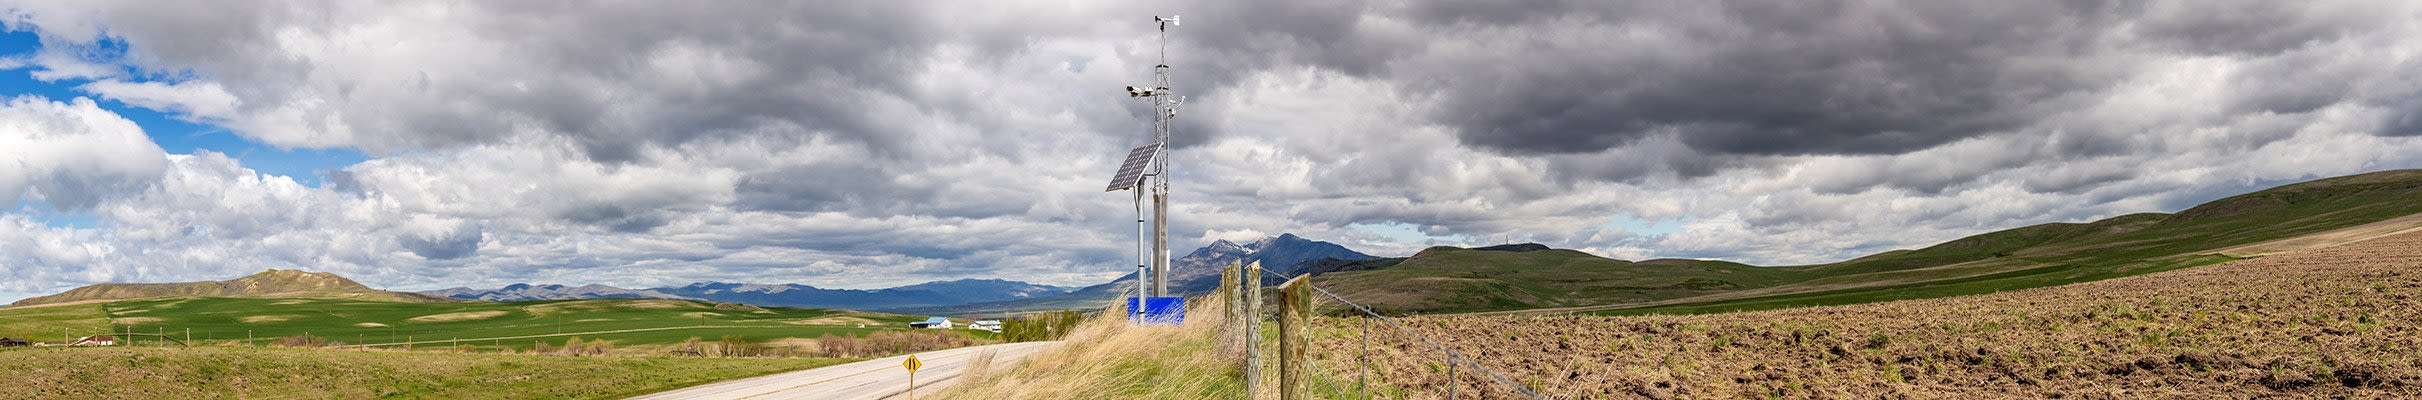 Weather Weather stations and systems for long-term monitoring